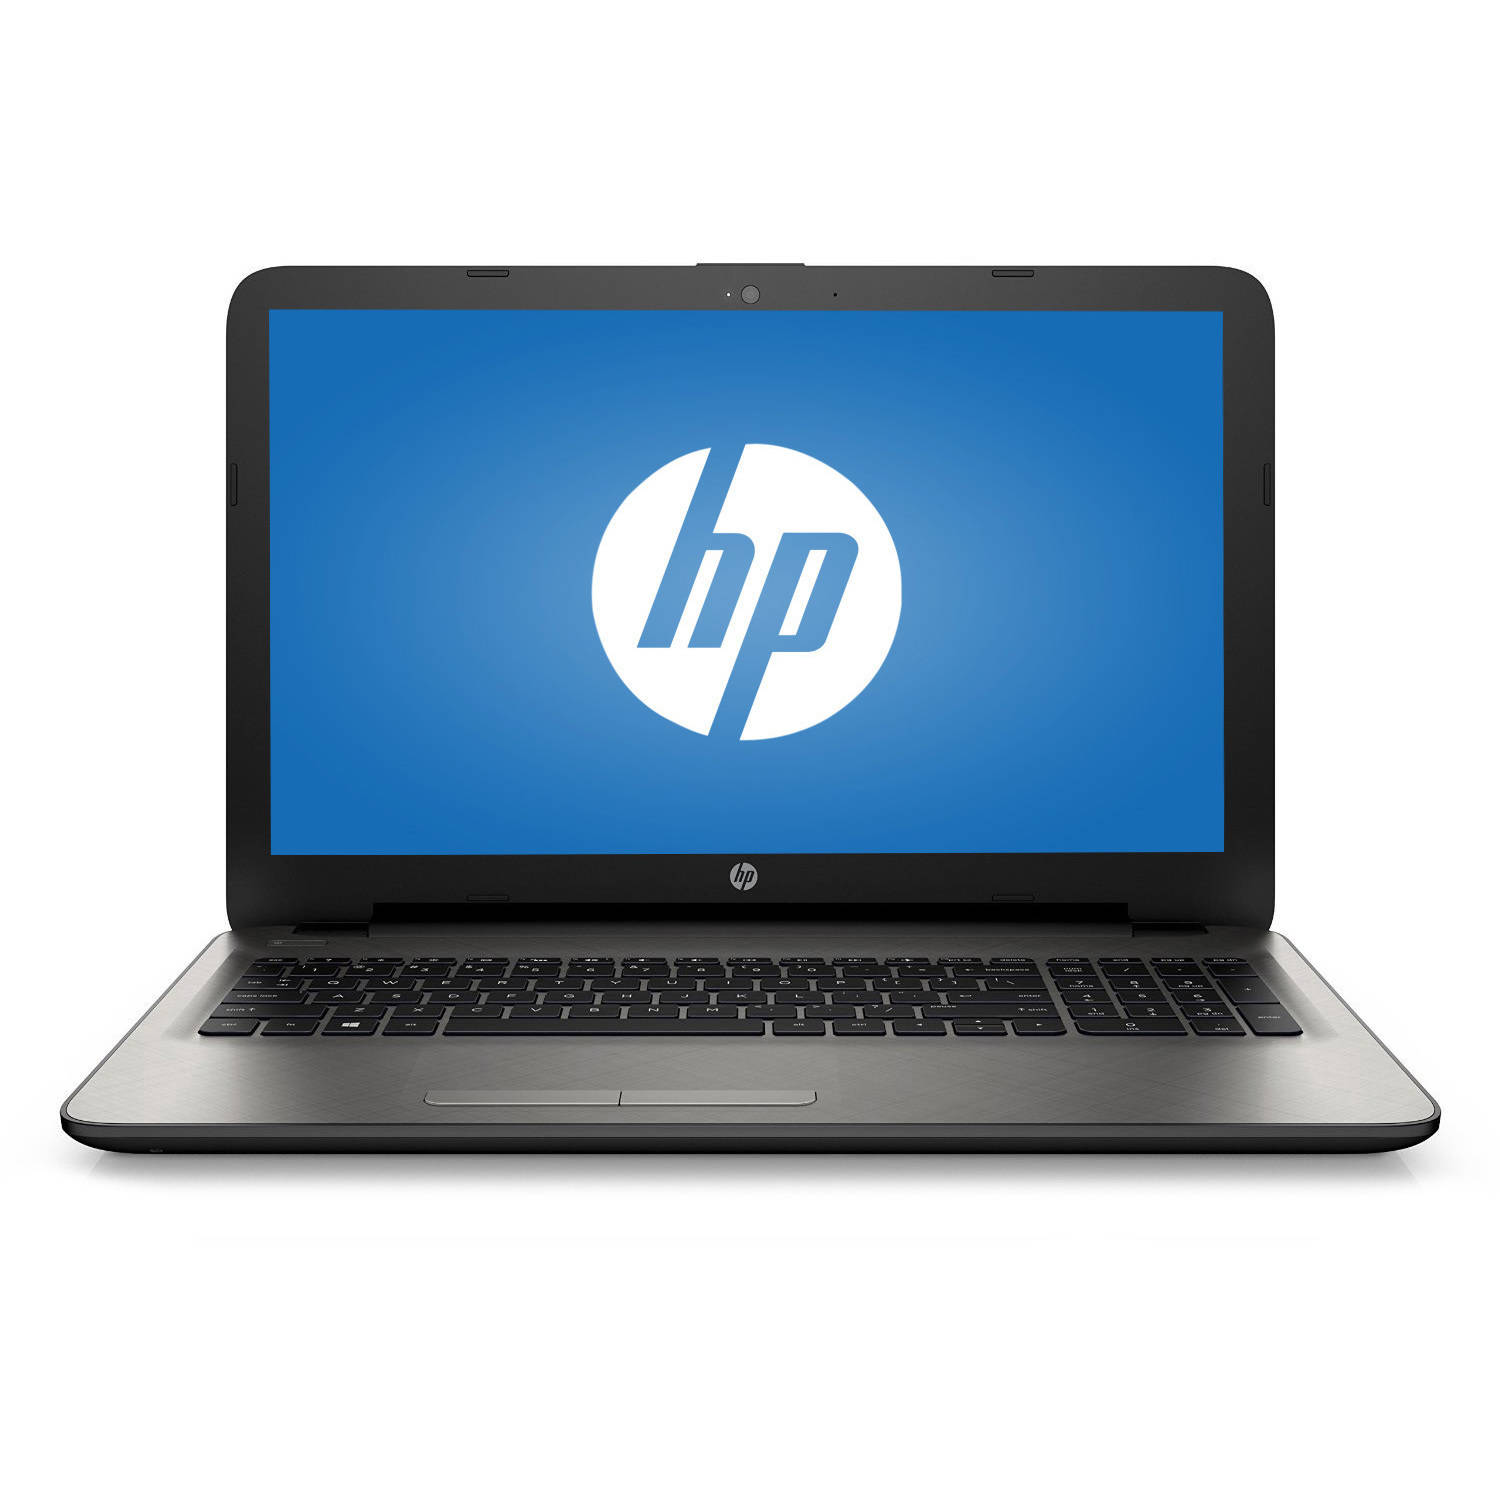 "Refurbished HP Black 15.6"" 15-ac121dx N5Y90UAR#ABA Laptop PC with Intel Core i3-5010U Processor, 6GB Memory, touch screen, 1TB Hard Drive and Windows 10 Home"